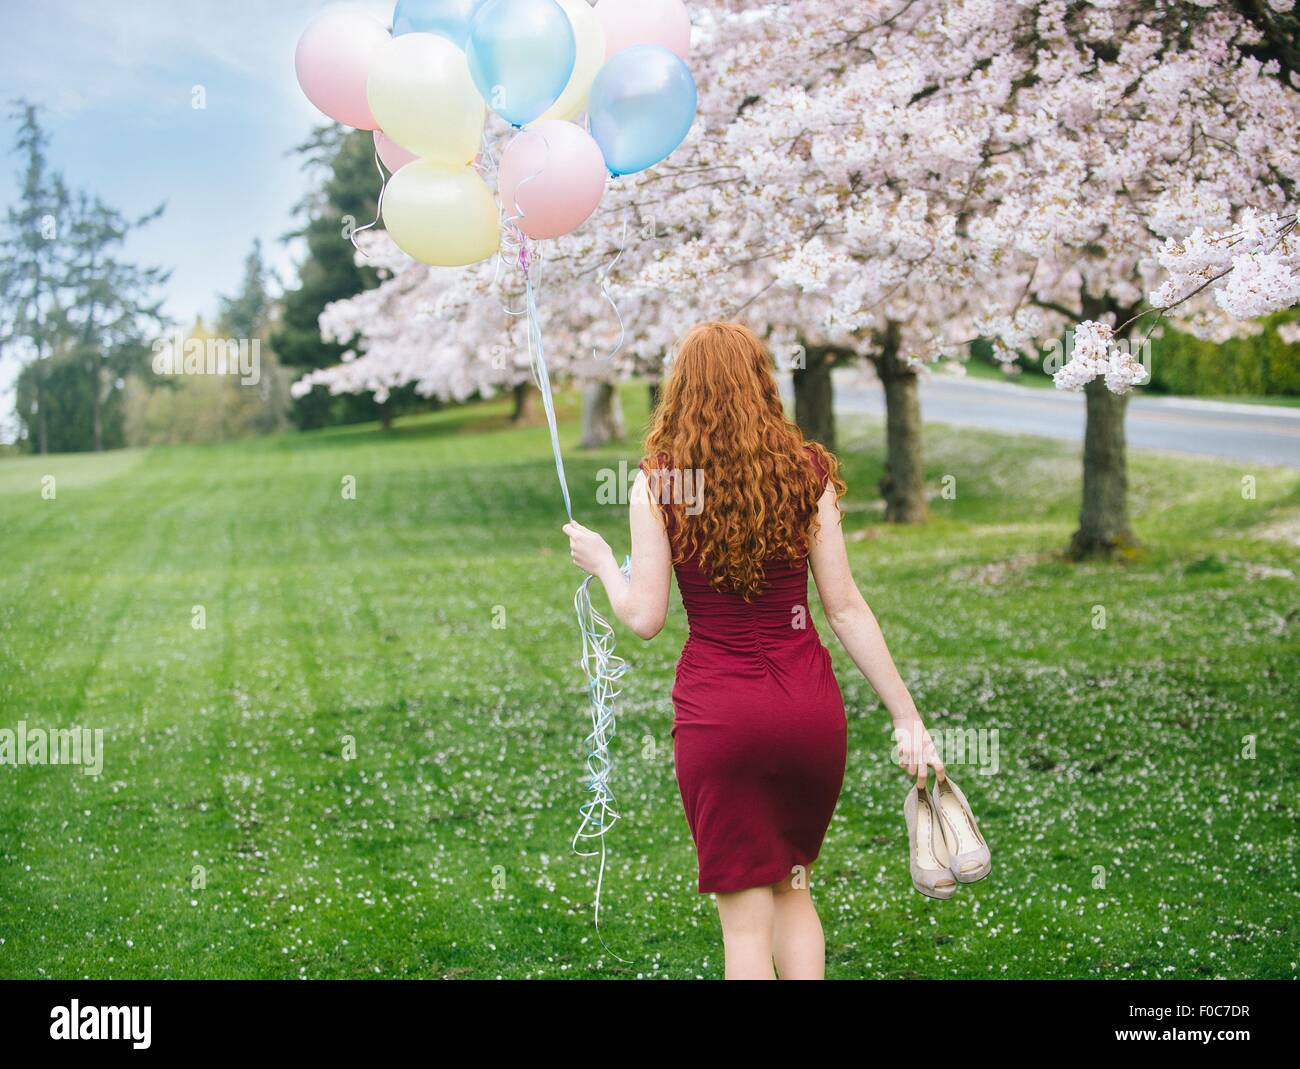 Rear view of young woman with long wavy red hair and bunch of balloons strolling in spring park - Stock Image